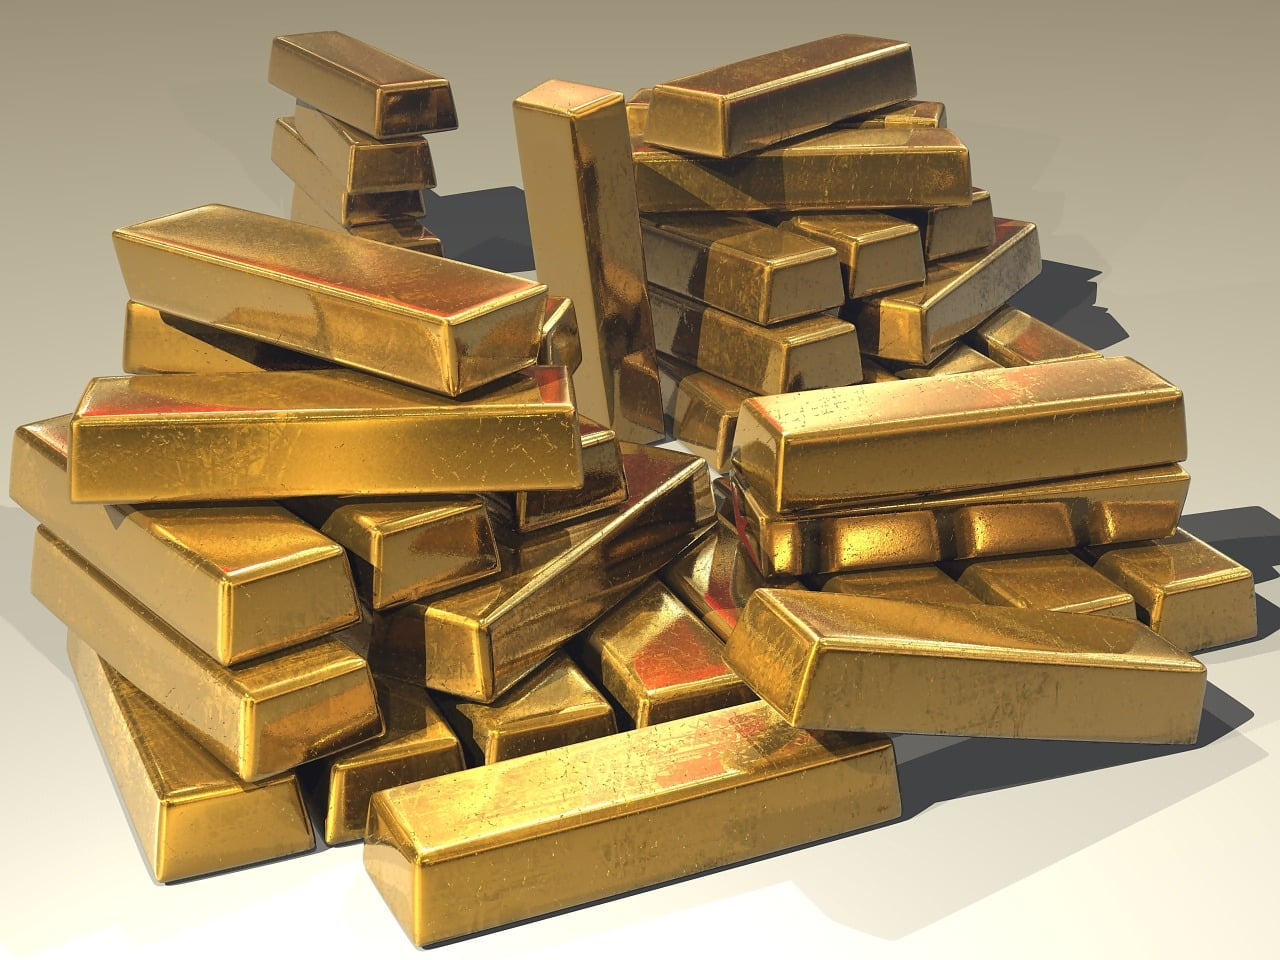 Gold precious metals fraud